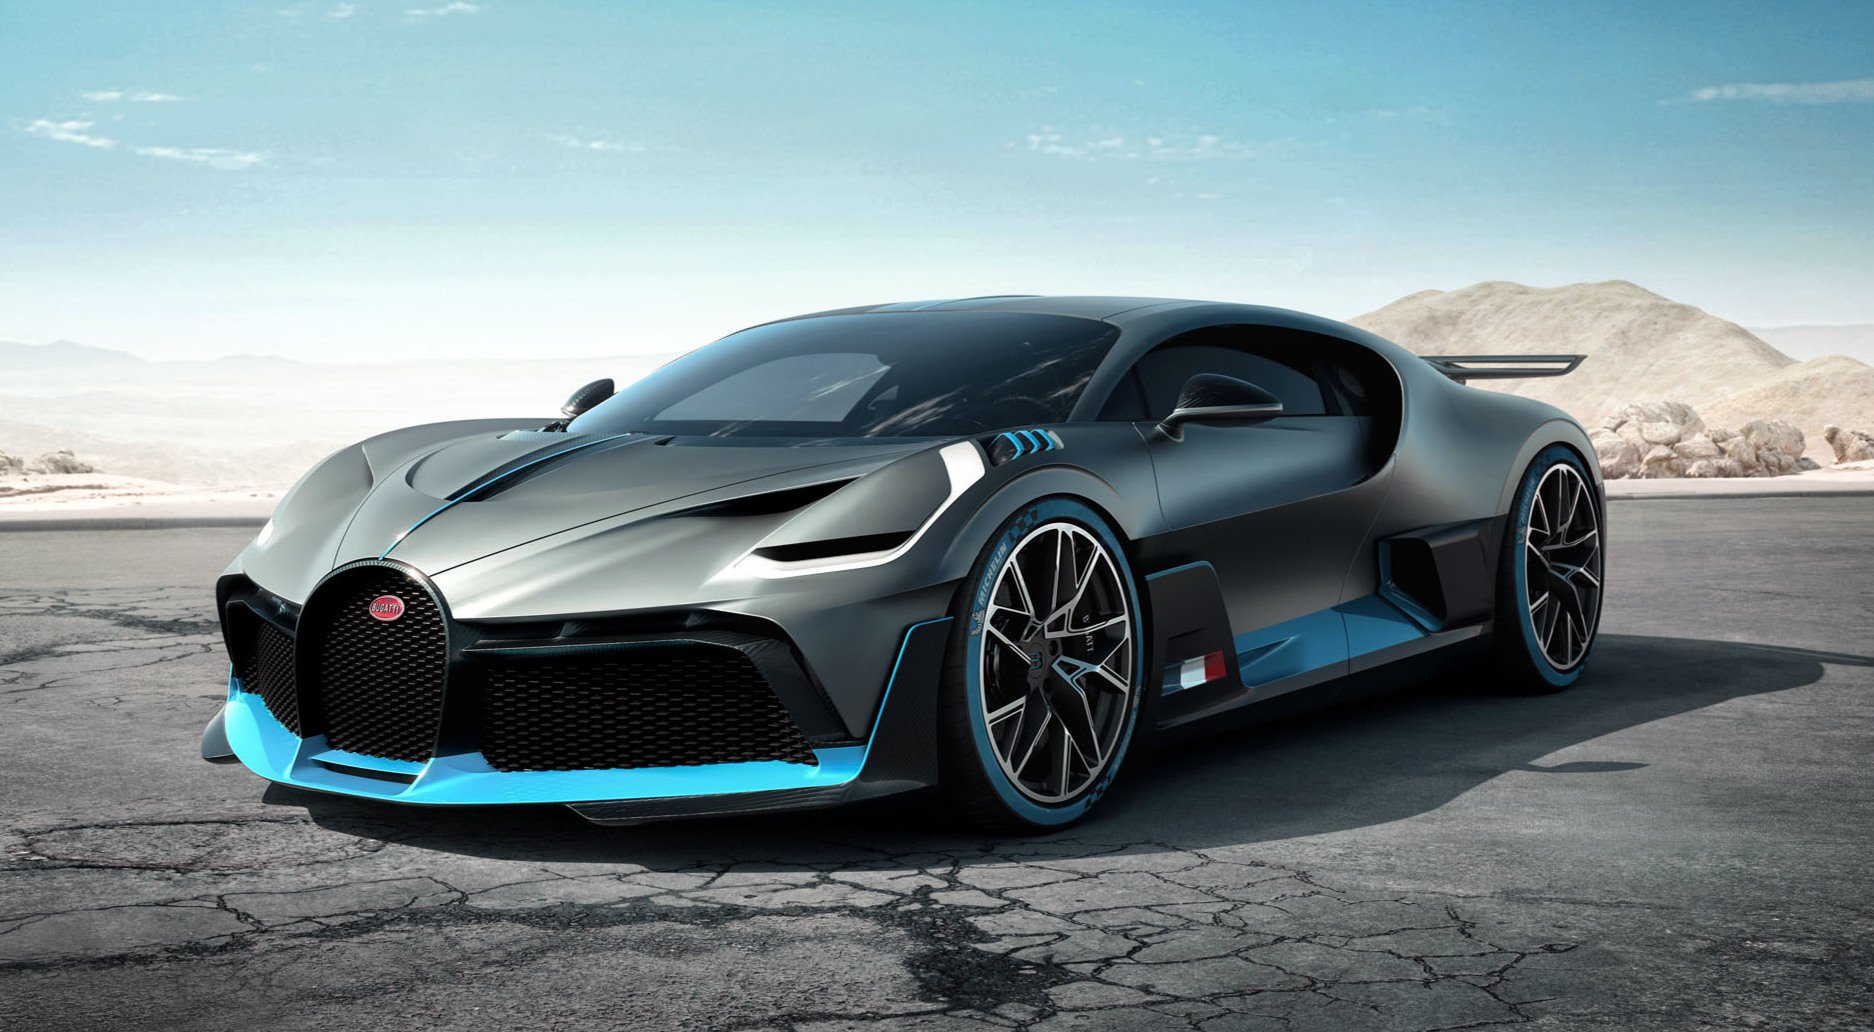 Bugatti Divo - Here are 7 astonishing facts about the $6 million hypercar -